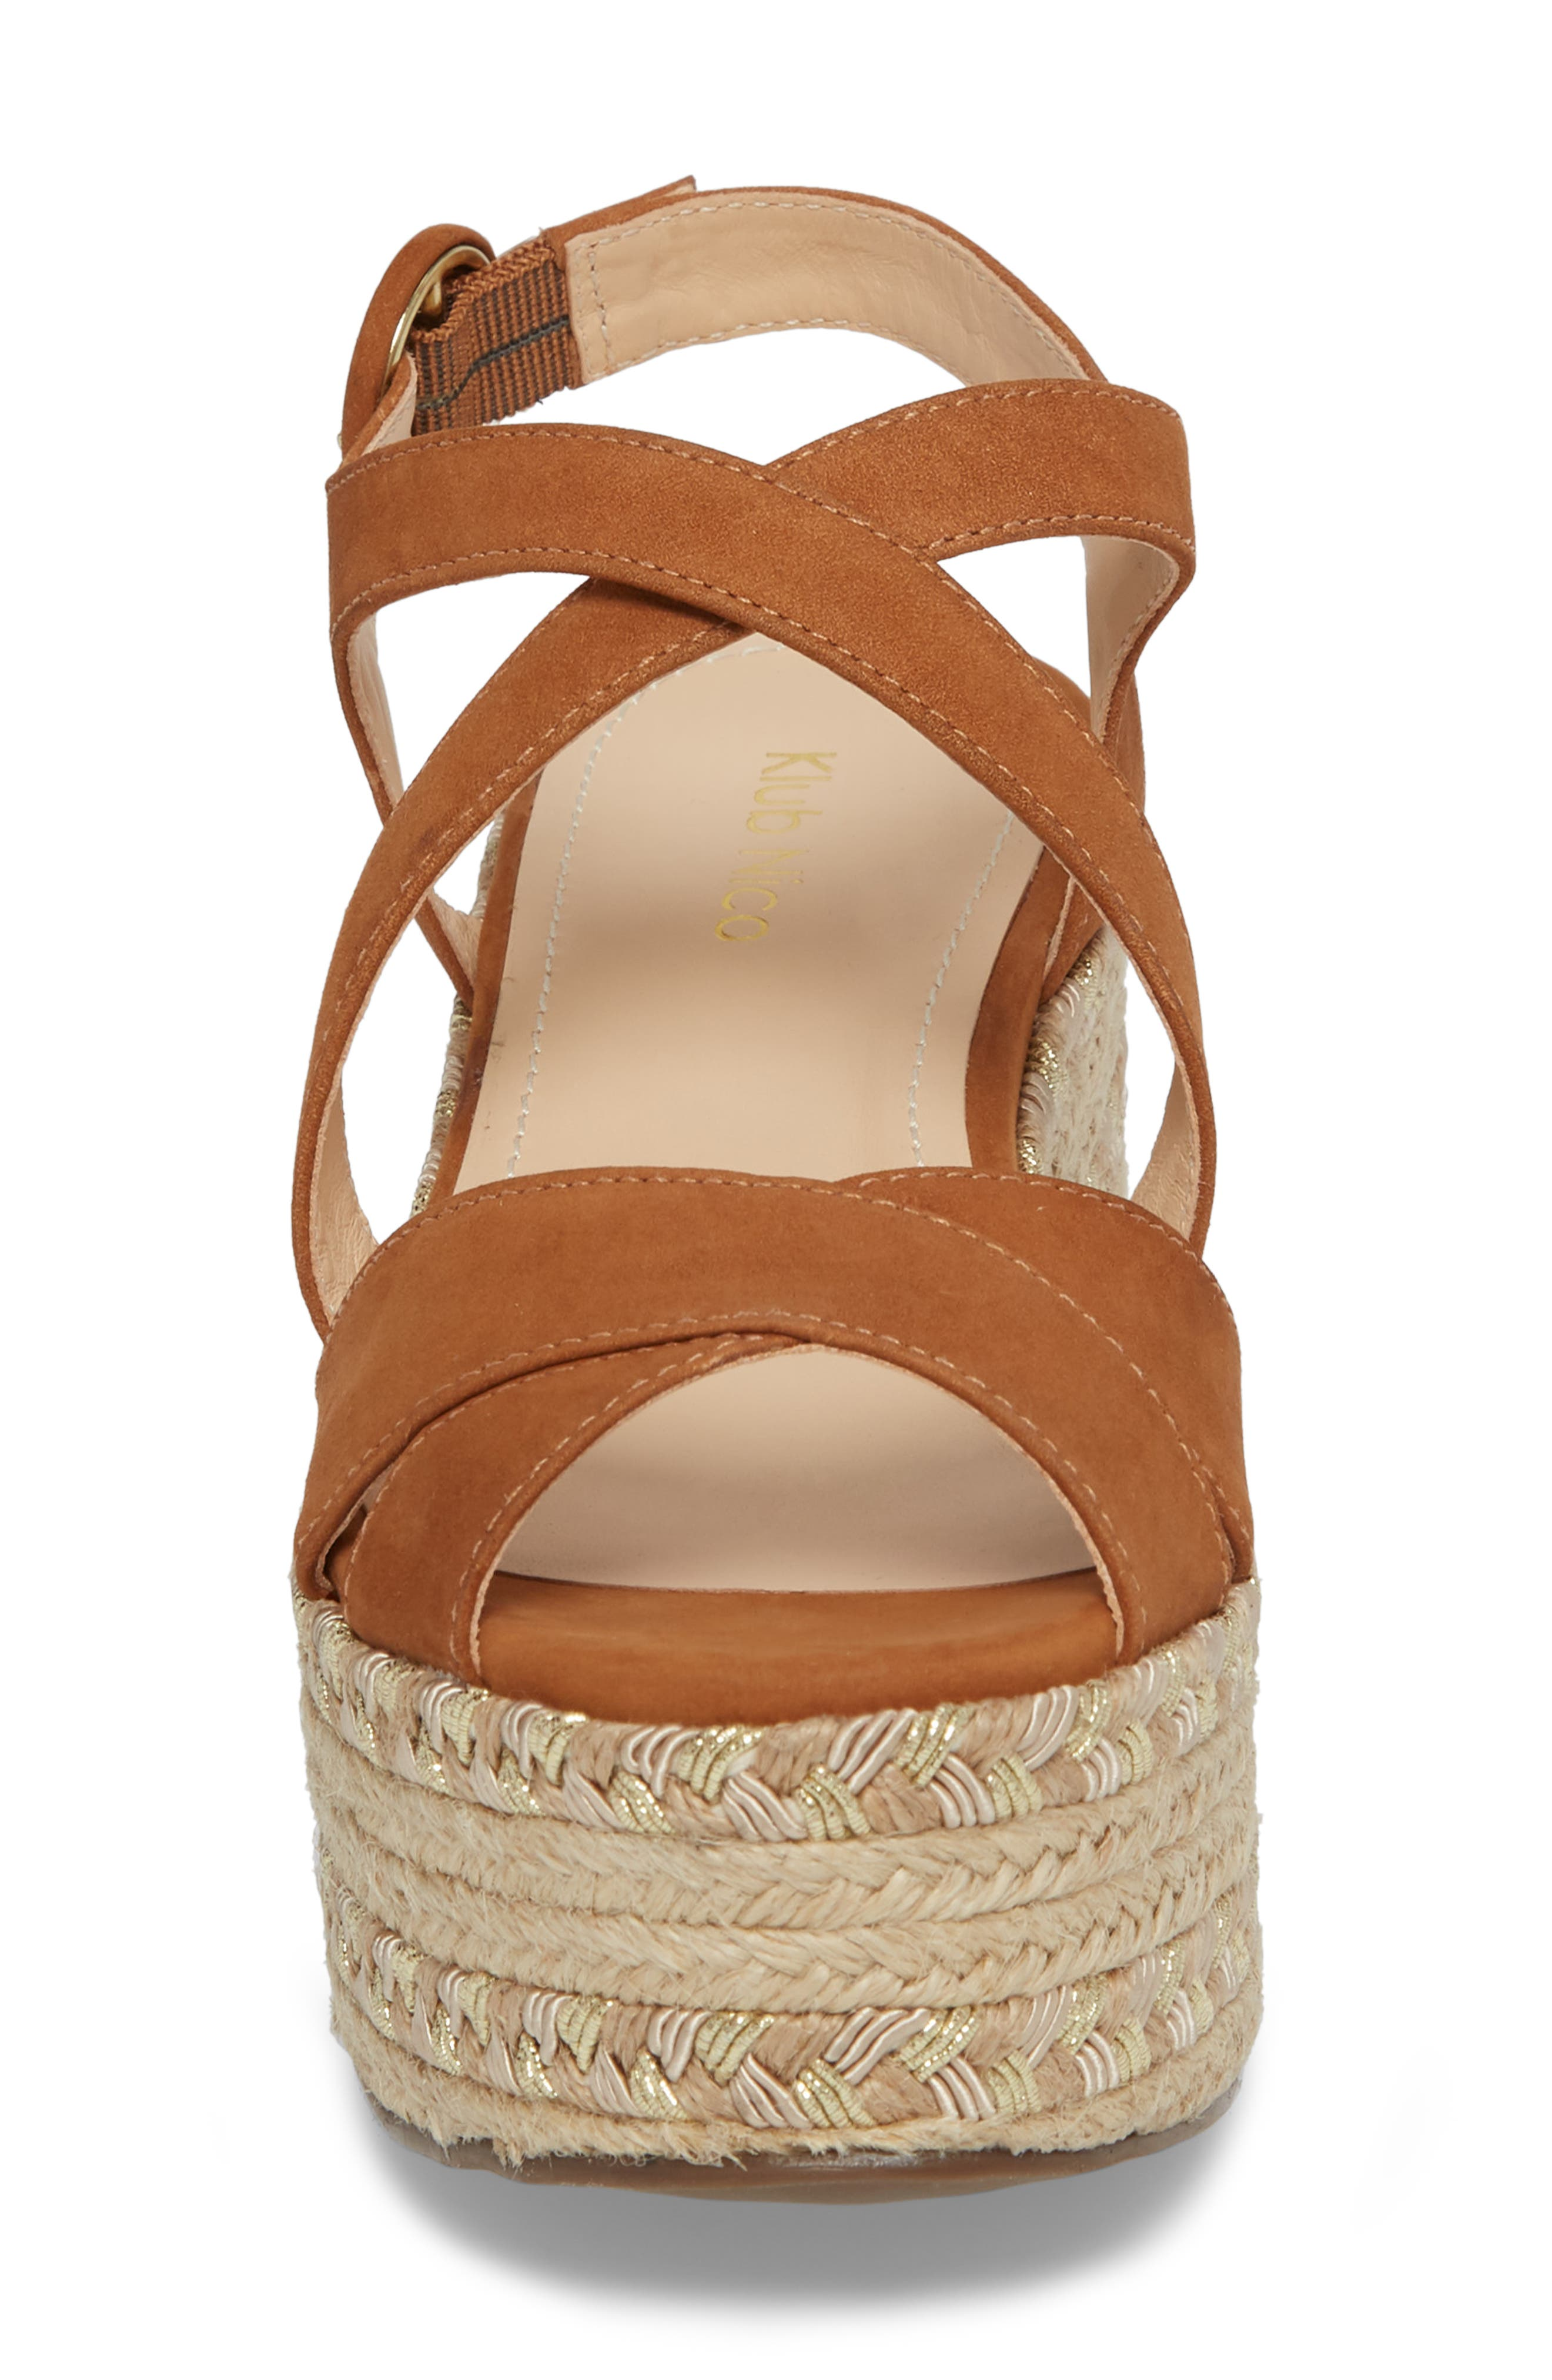 KLUB NICO,                             Vikki Espadrille Platform Sandal,                             Alternate thumbnail 4, color,                             TAN LEATHER